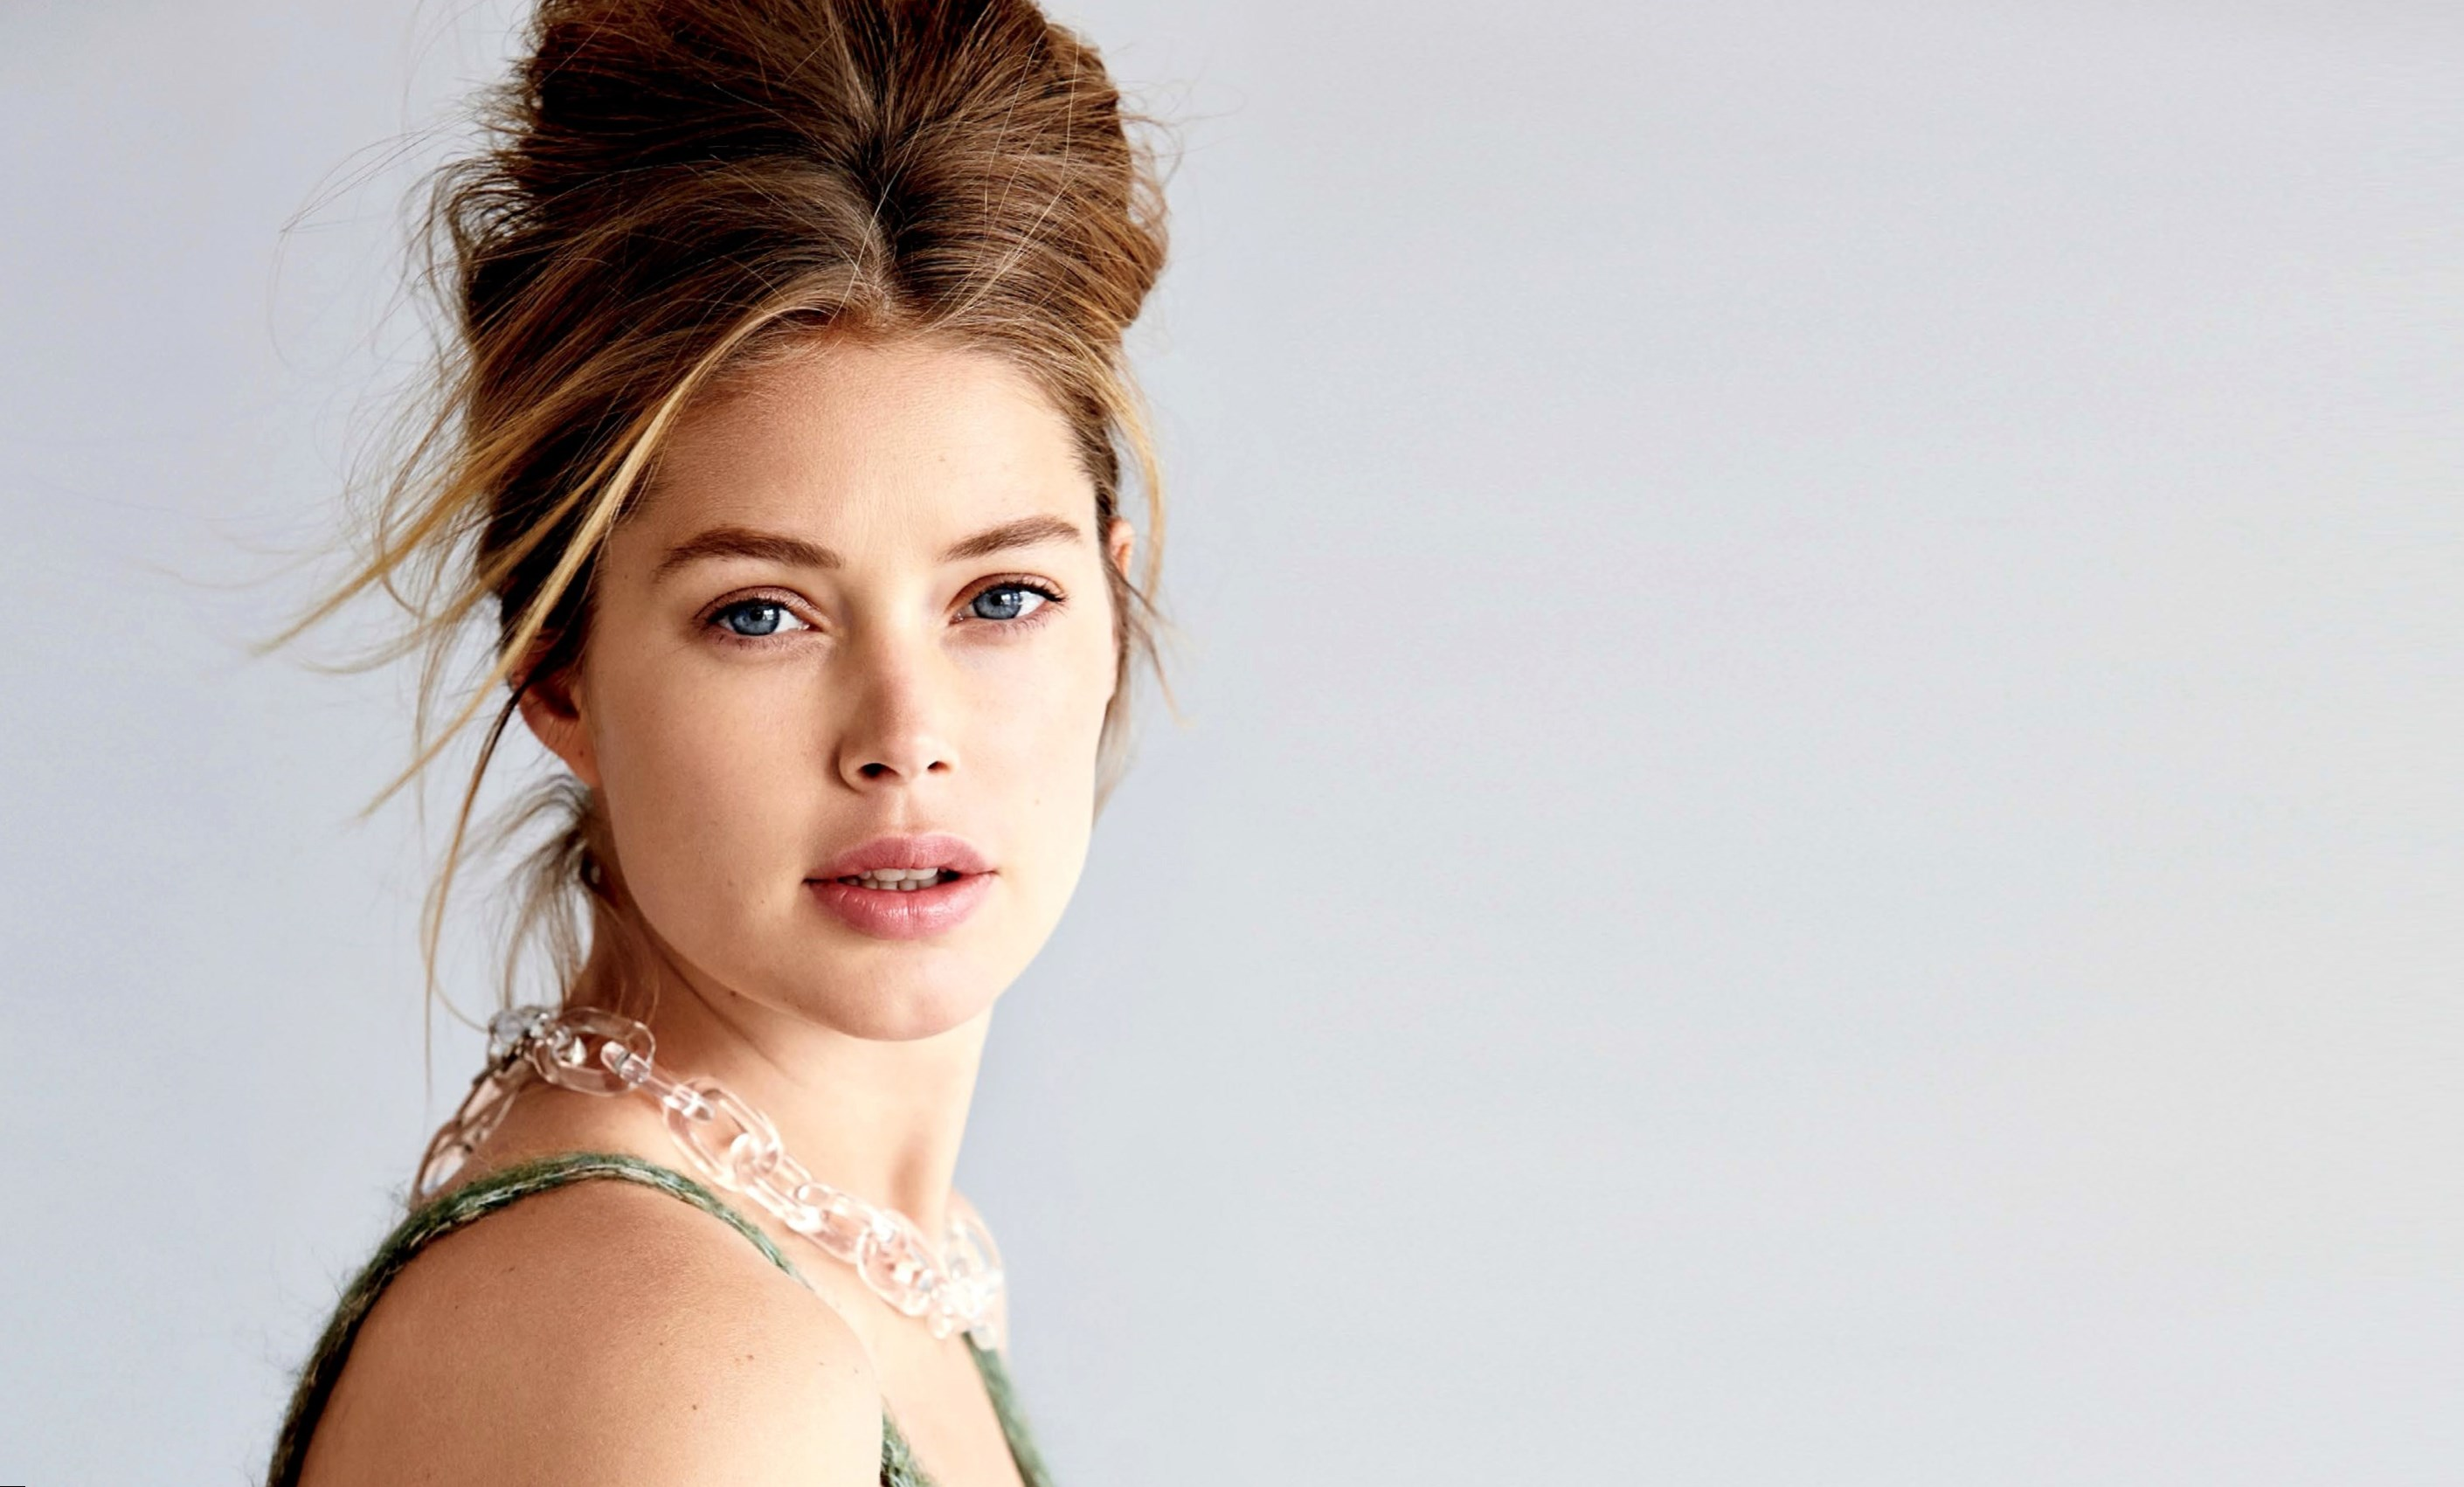 Doutzen kroes weight height and age we know it all for Model height